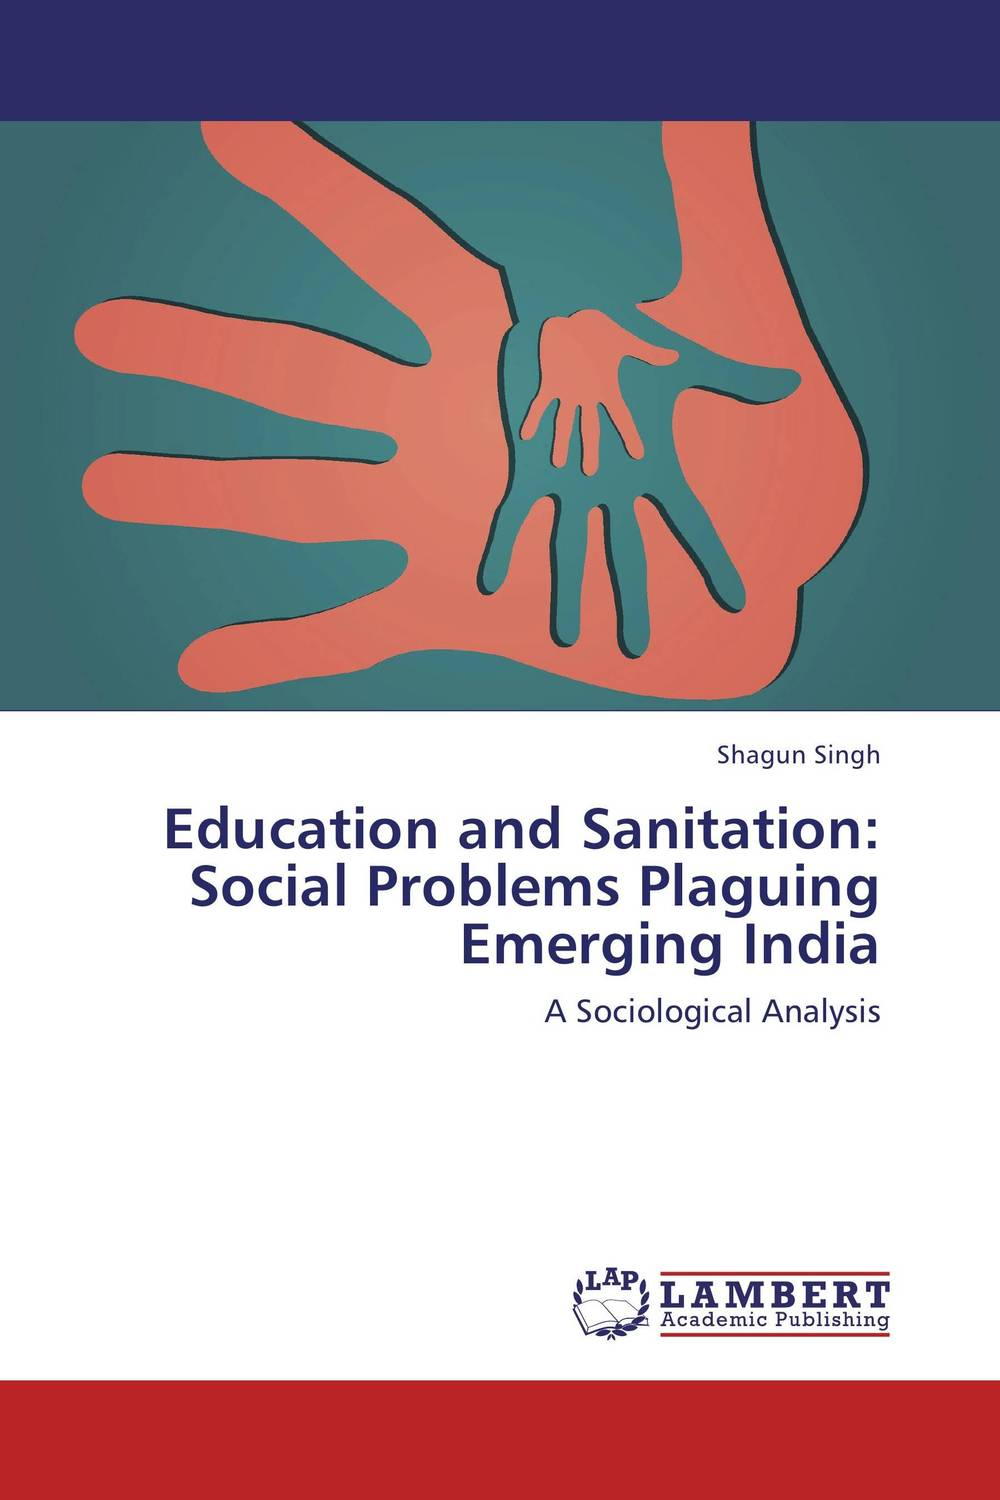 цена на Education and Sanitation: Social Problems Plaguing Emerging India